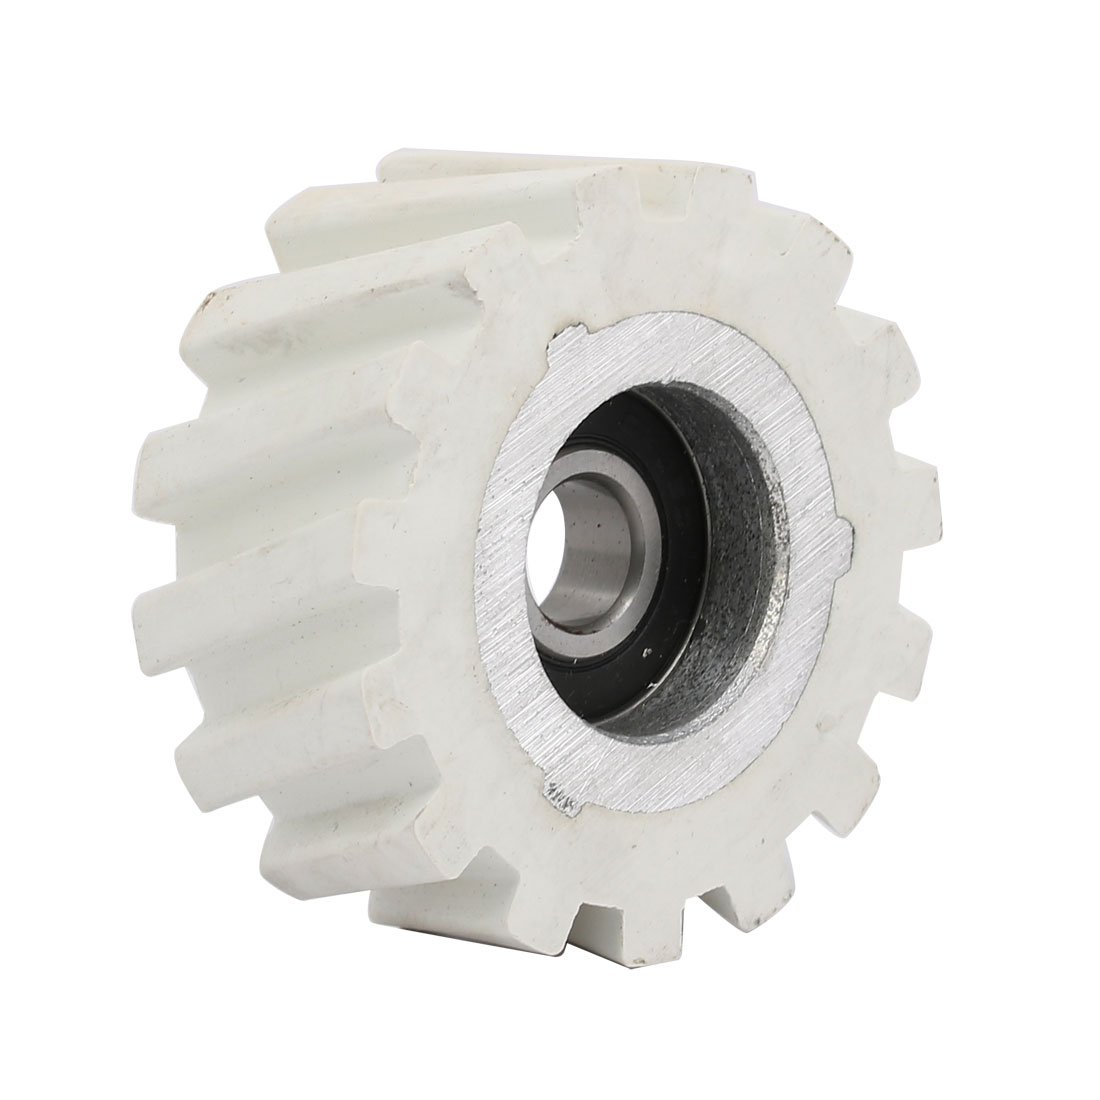 uxcell 65mmx12mmx28mm Bearing Steel Rubber Pinch Roller Edgebanding Wheel Pulley White